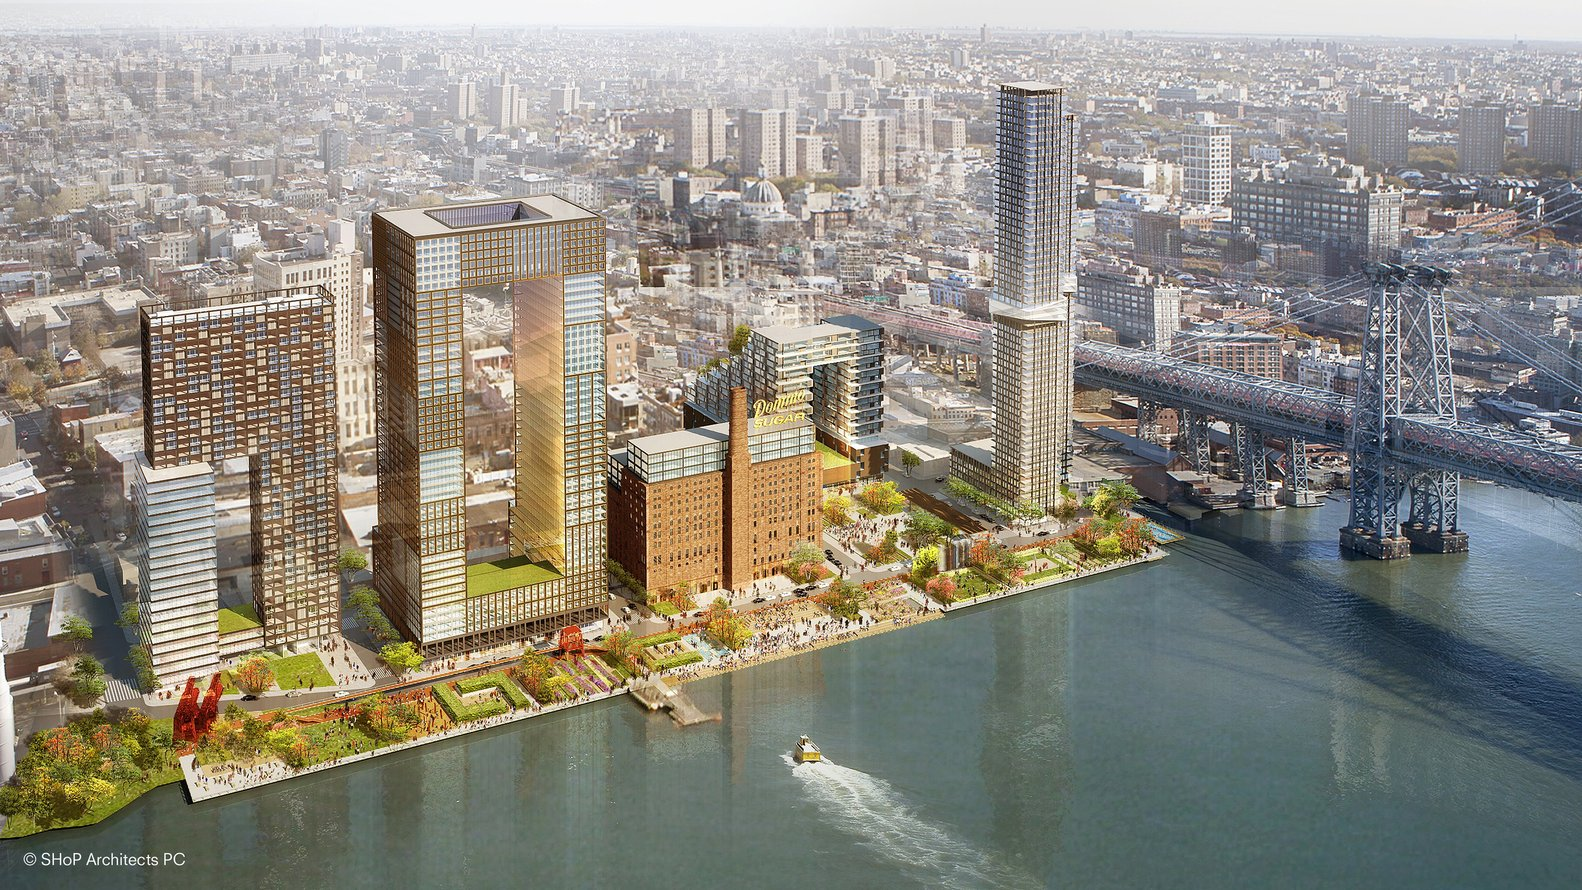 5 NYC Projects - Domino Sugar Factory - SHOP Architects - IGS Magazine - 1